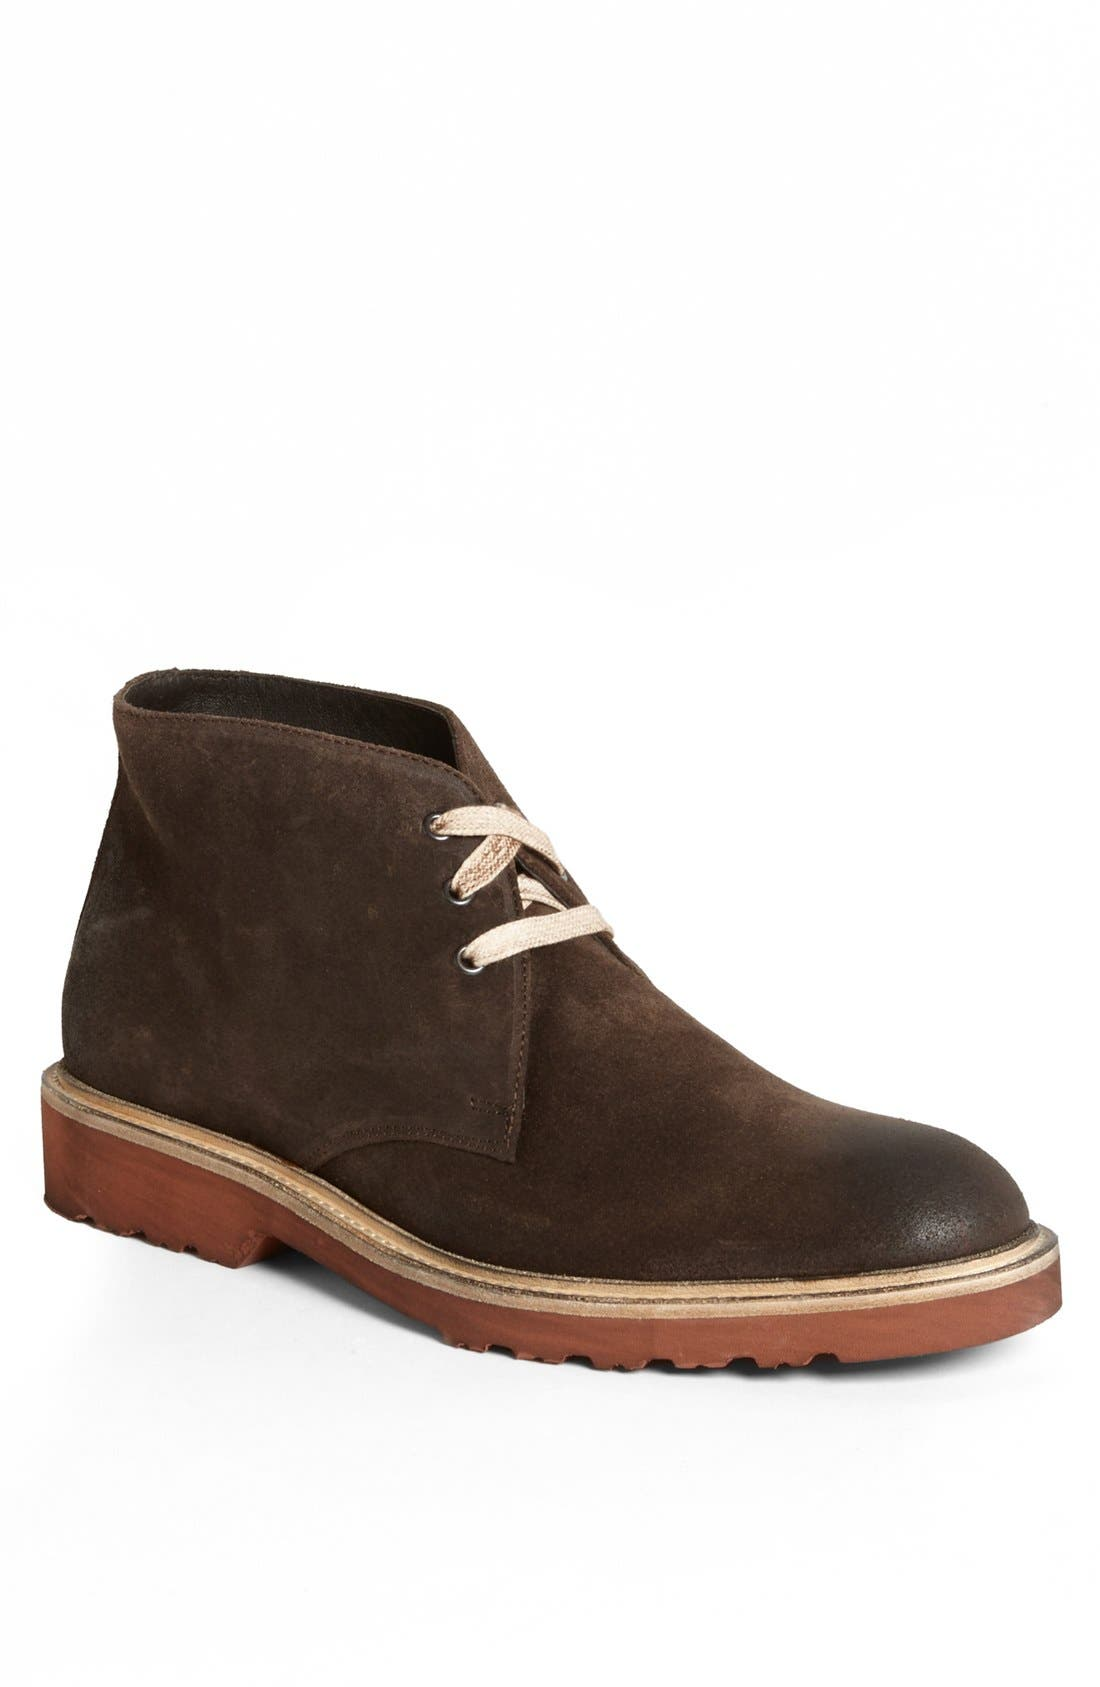 Alternate Image 1 Selected - Boemos Suede Chukka Boot